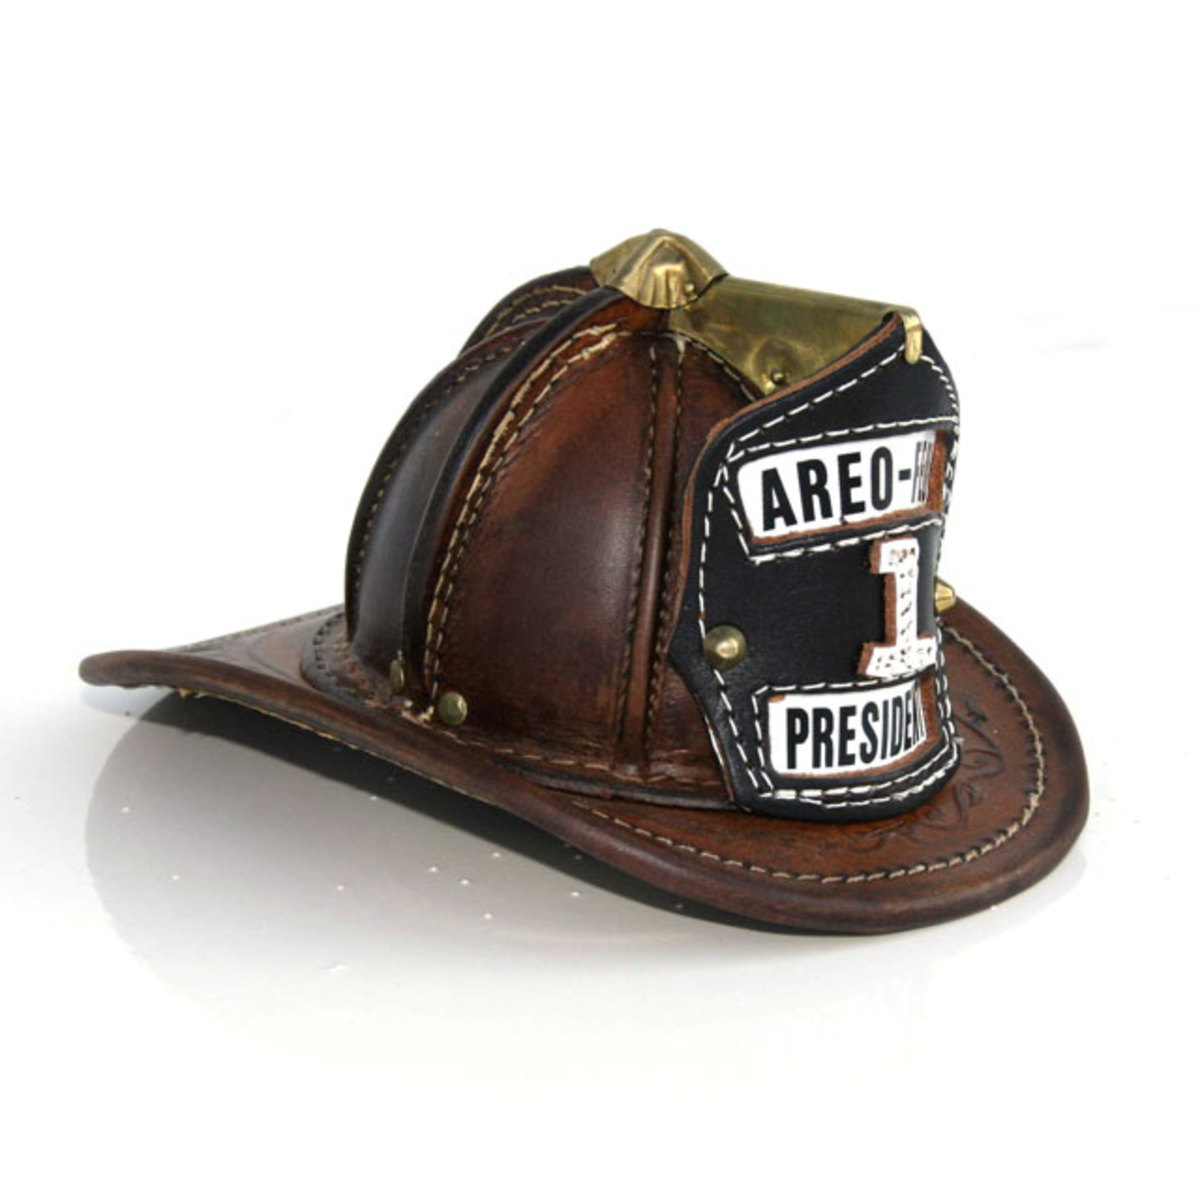 One of the original style leather helmets